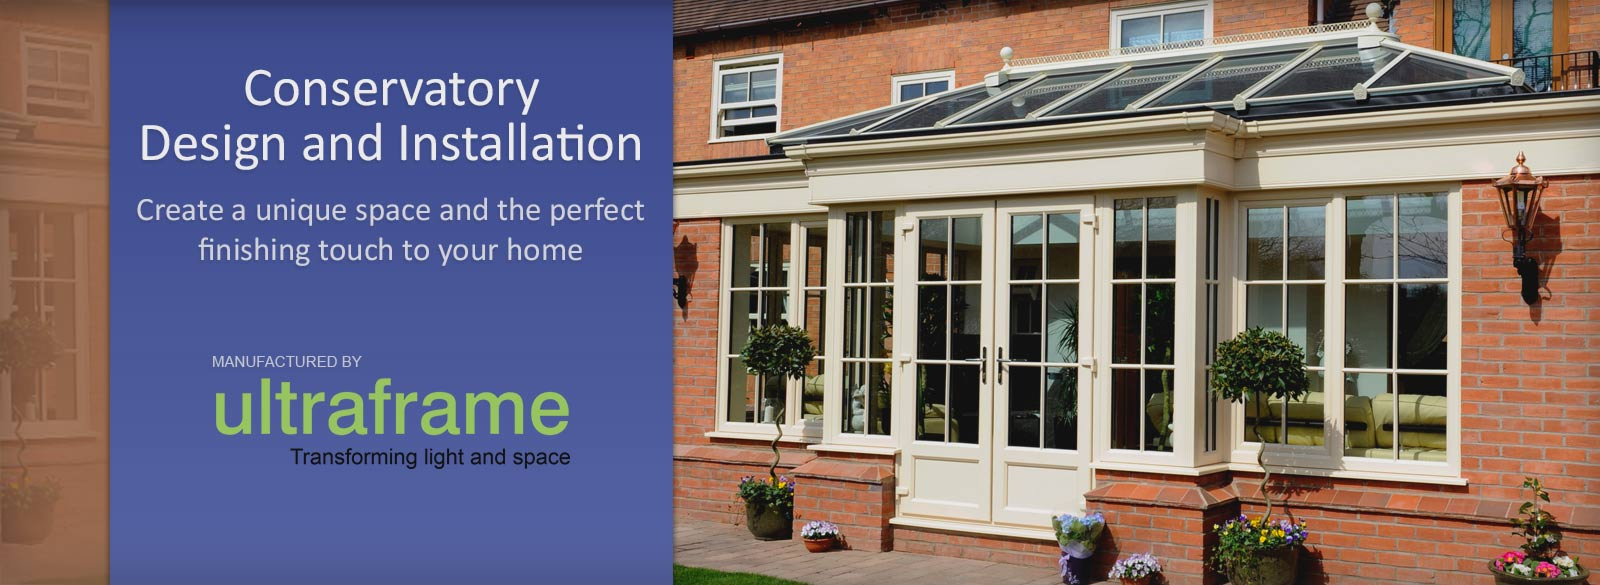 Conservatory Design and Installation services